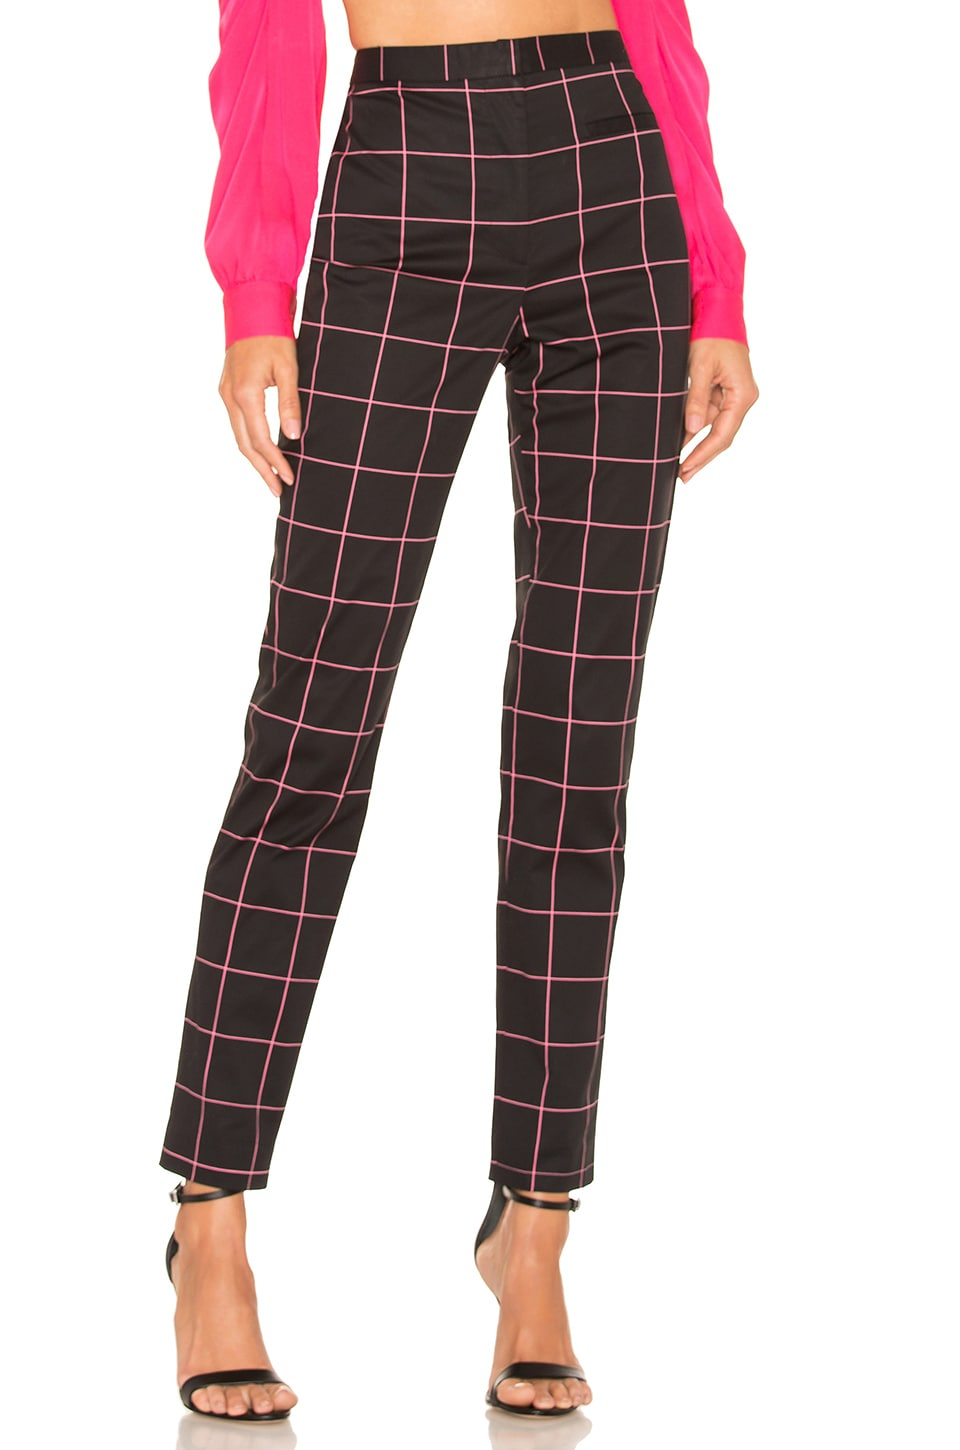 MILLY Techno High Waist Pant in Black & Pink